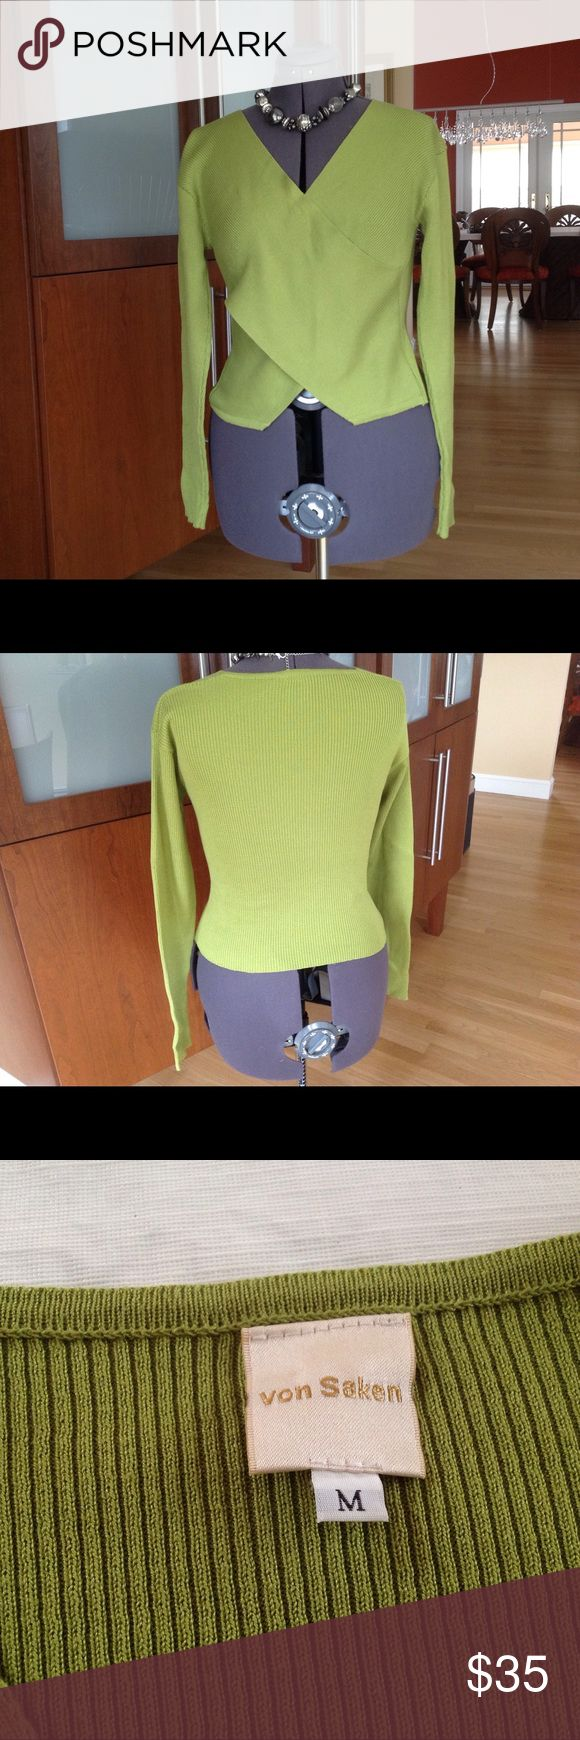 Lime green crossover, v- neck cotton sweater This stylish, long sleeve, ribbed sweater s perfect for a cool summer evening.   Lots of detail and perfect with dressy or casual pants. von saken Sweaters V-Necks